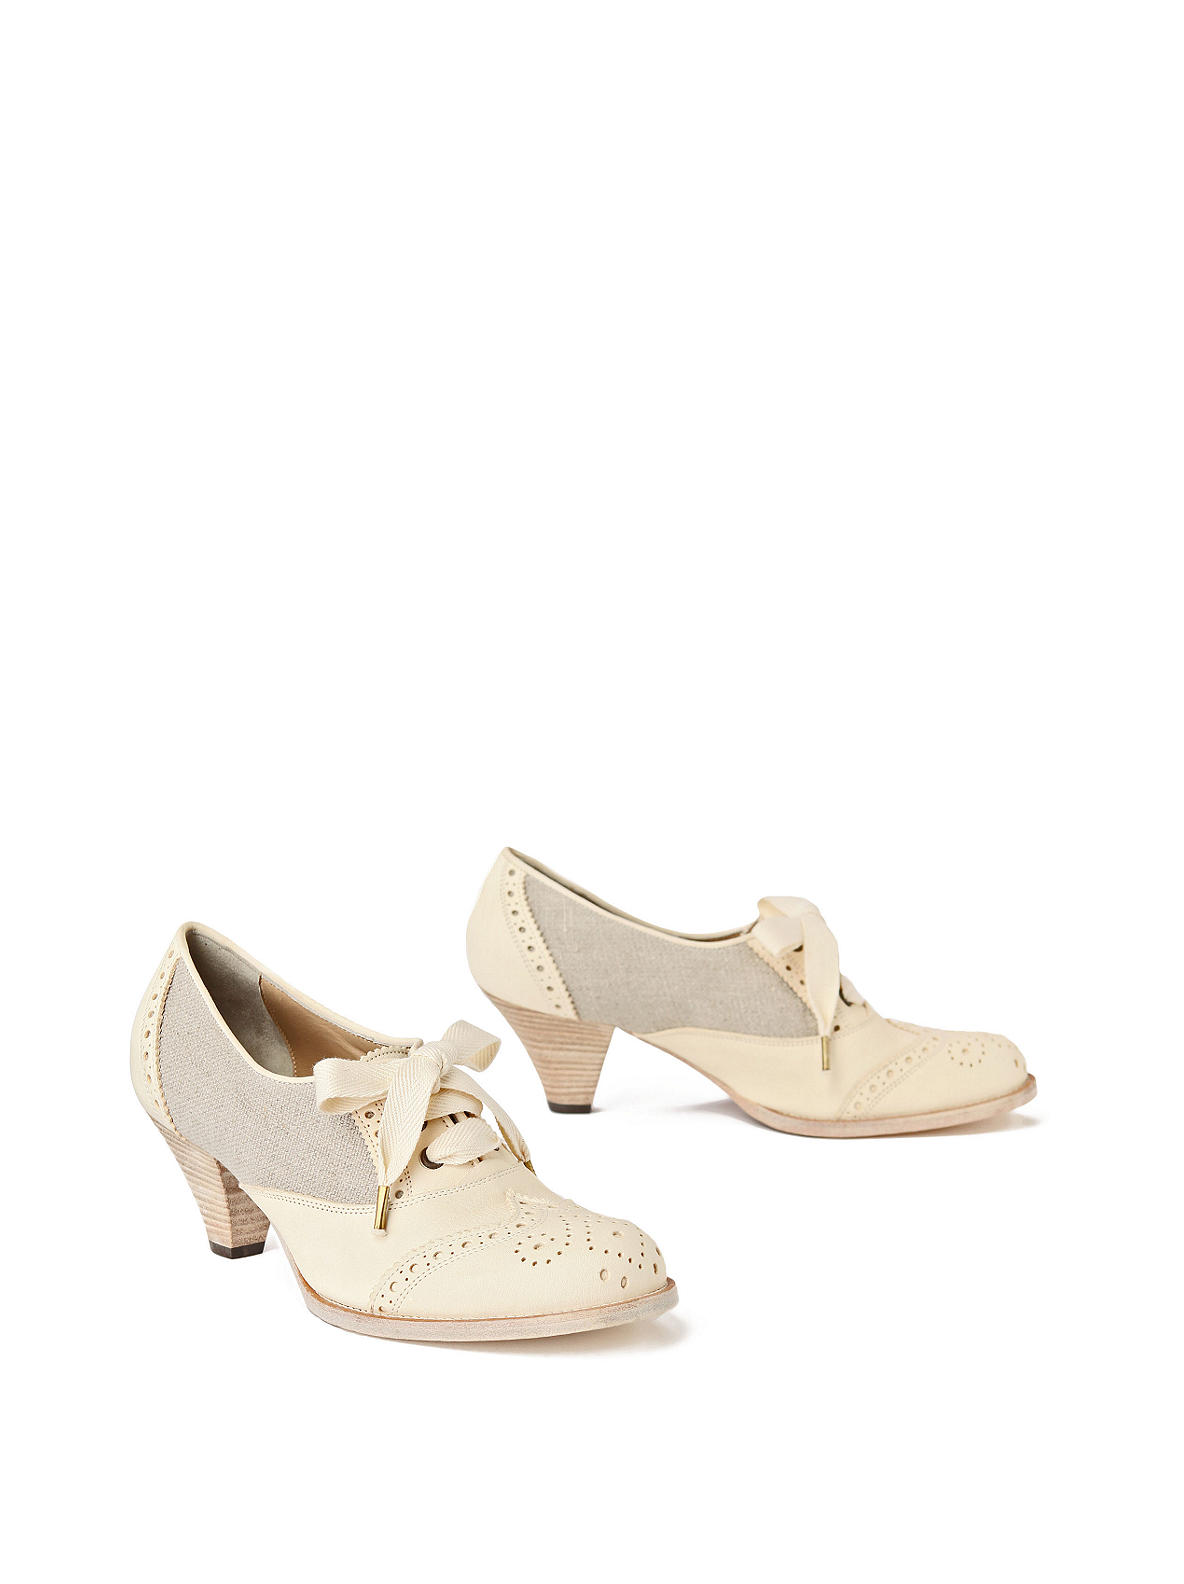 East Egg Brogues - Anthropologie.com